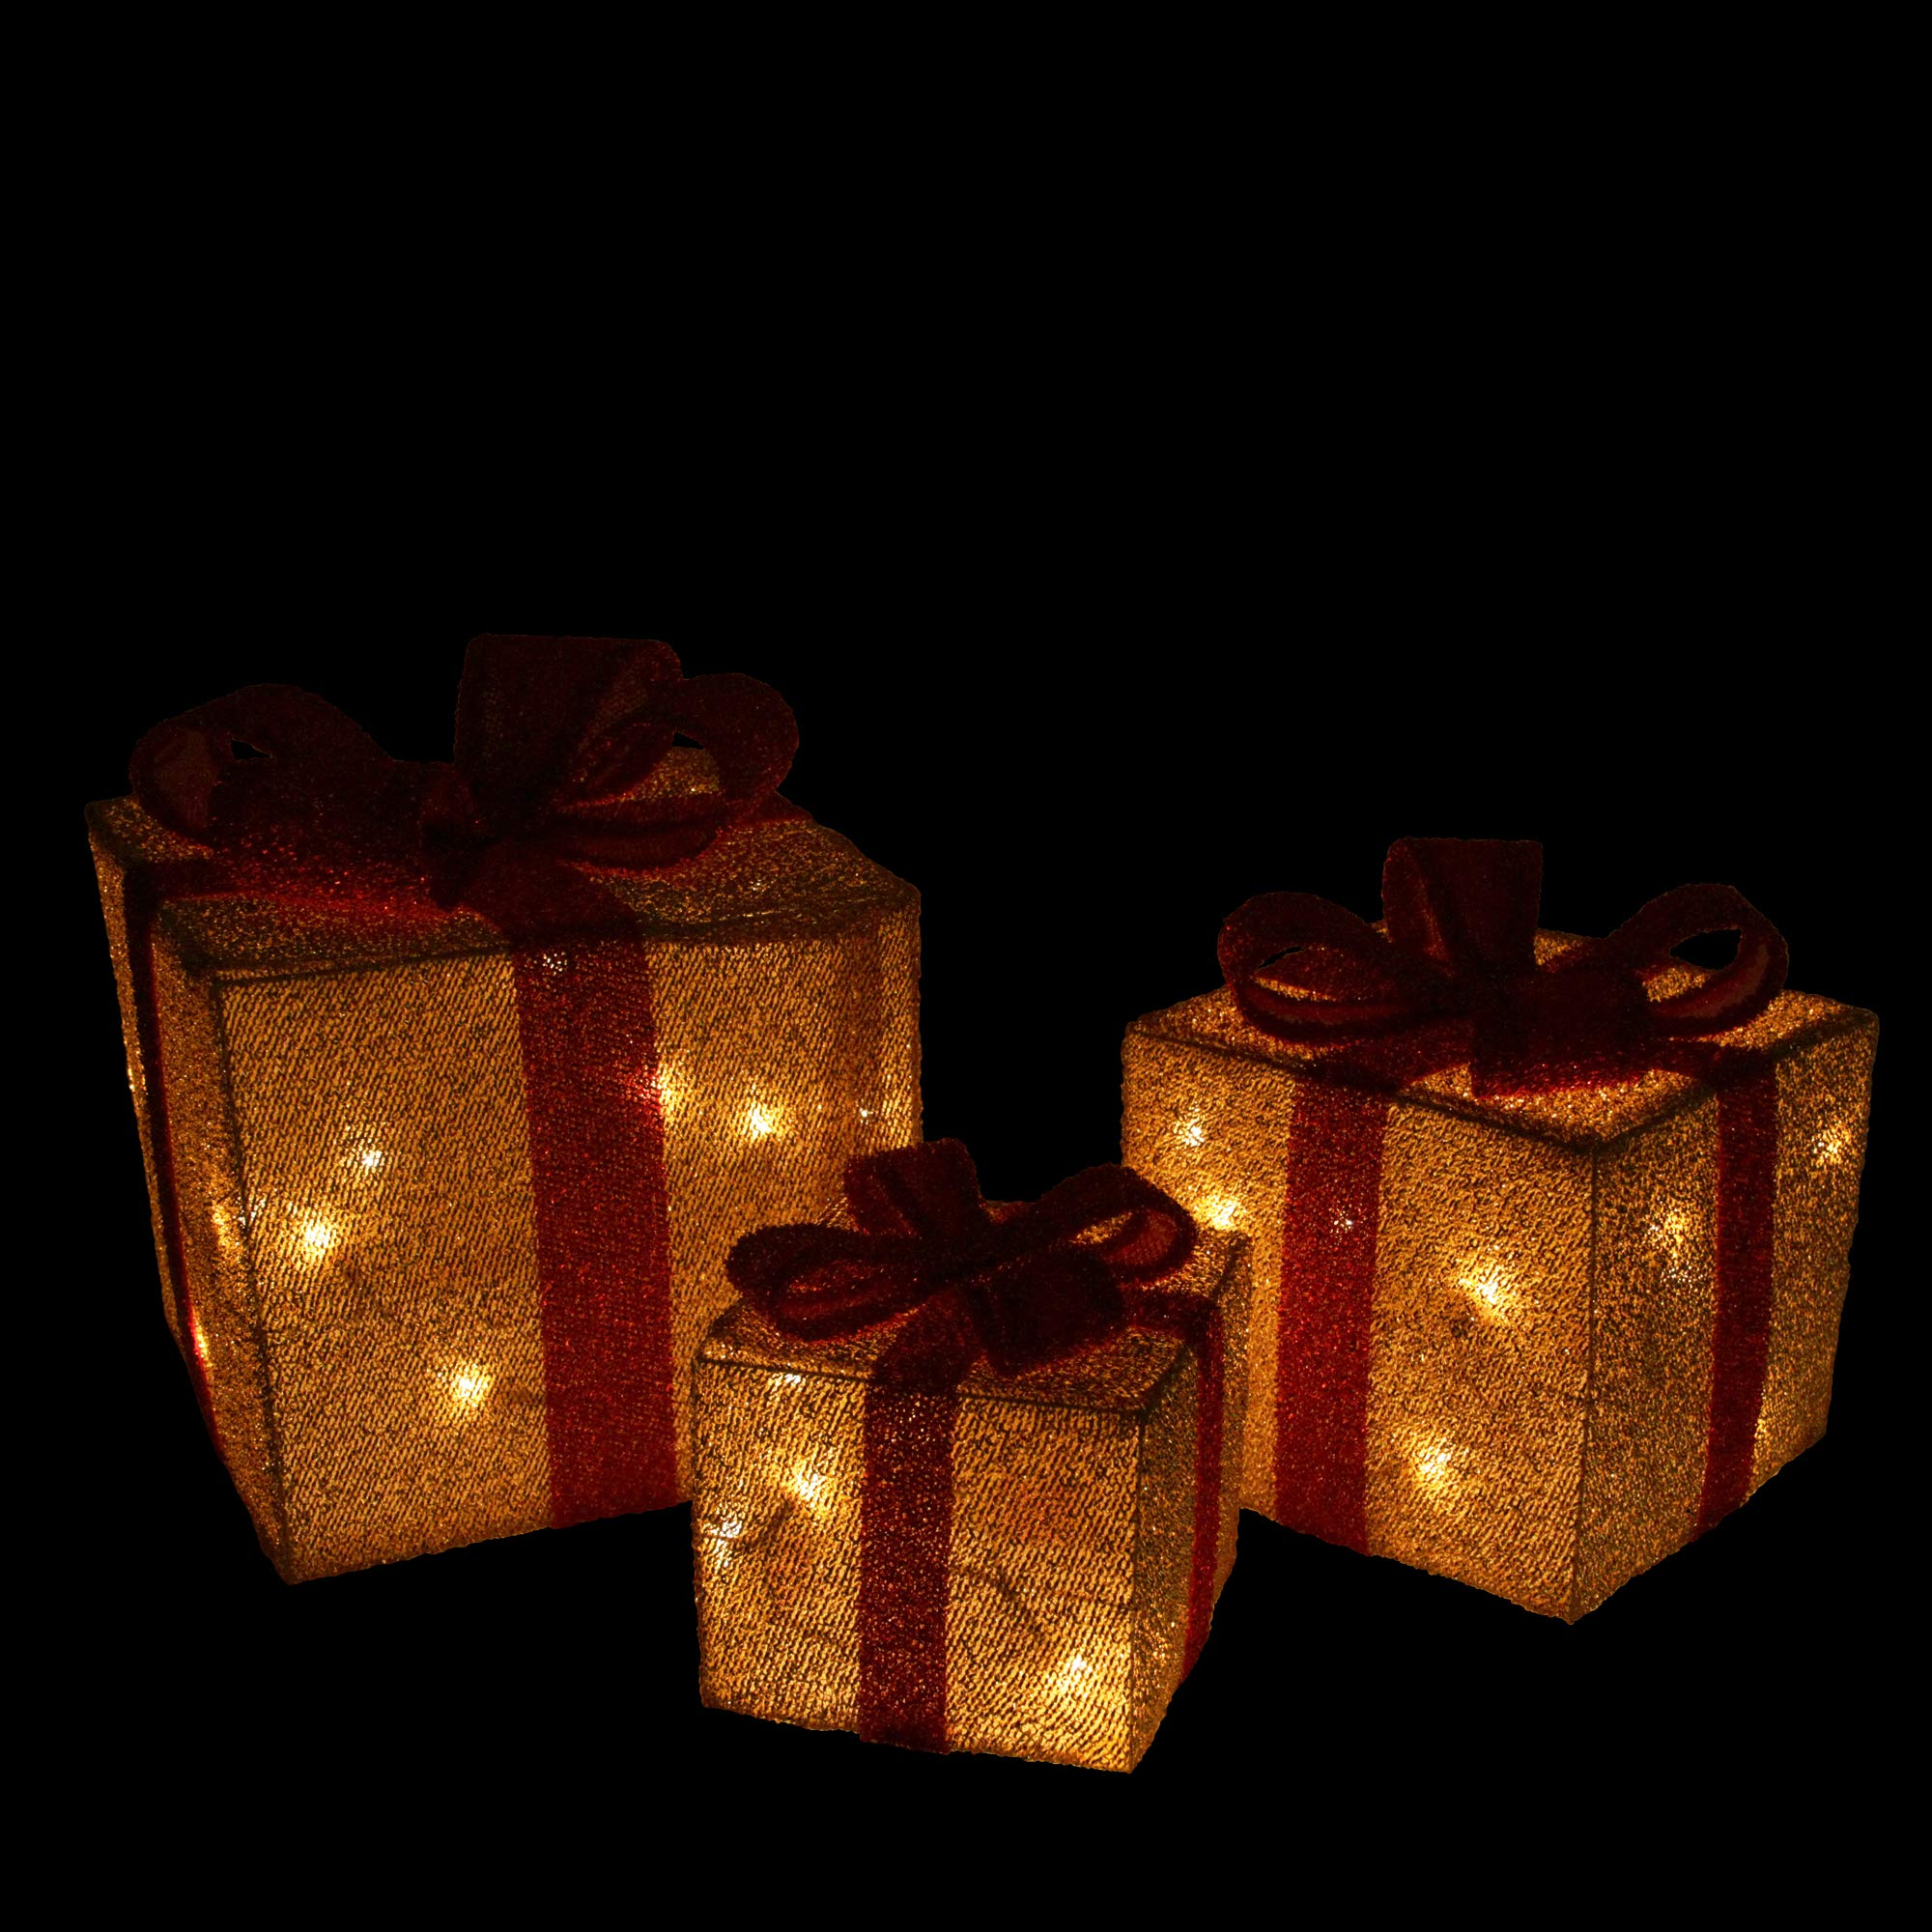 Northlight Set of 3 Gold Tinsel Gift Boxes with Red Bows Lighted Christmas Outdoor Decorations by Northlight (Image #2)